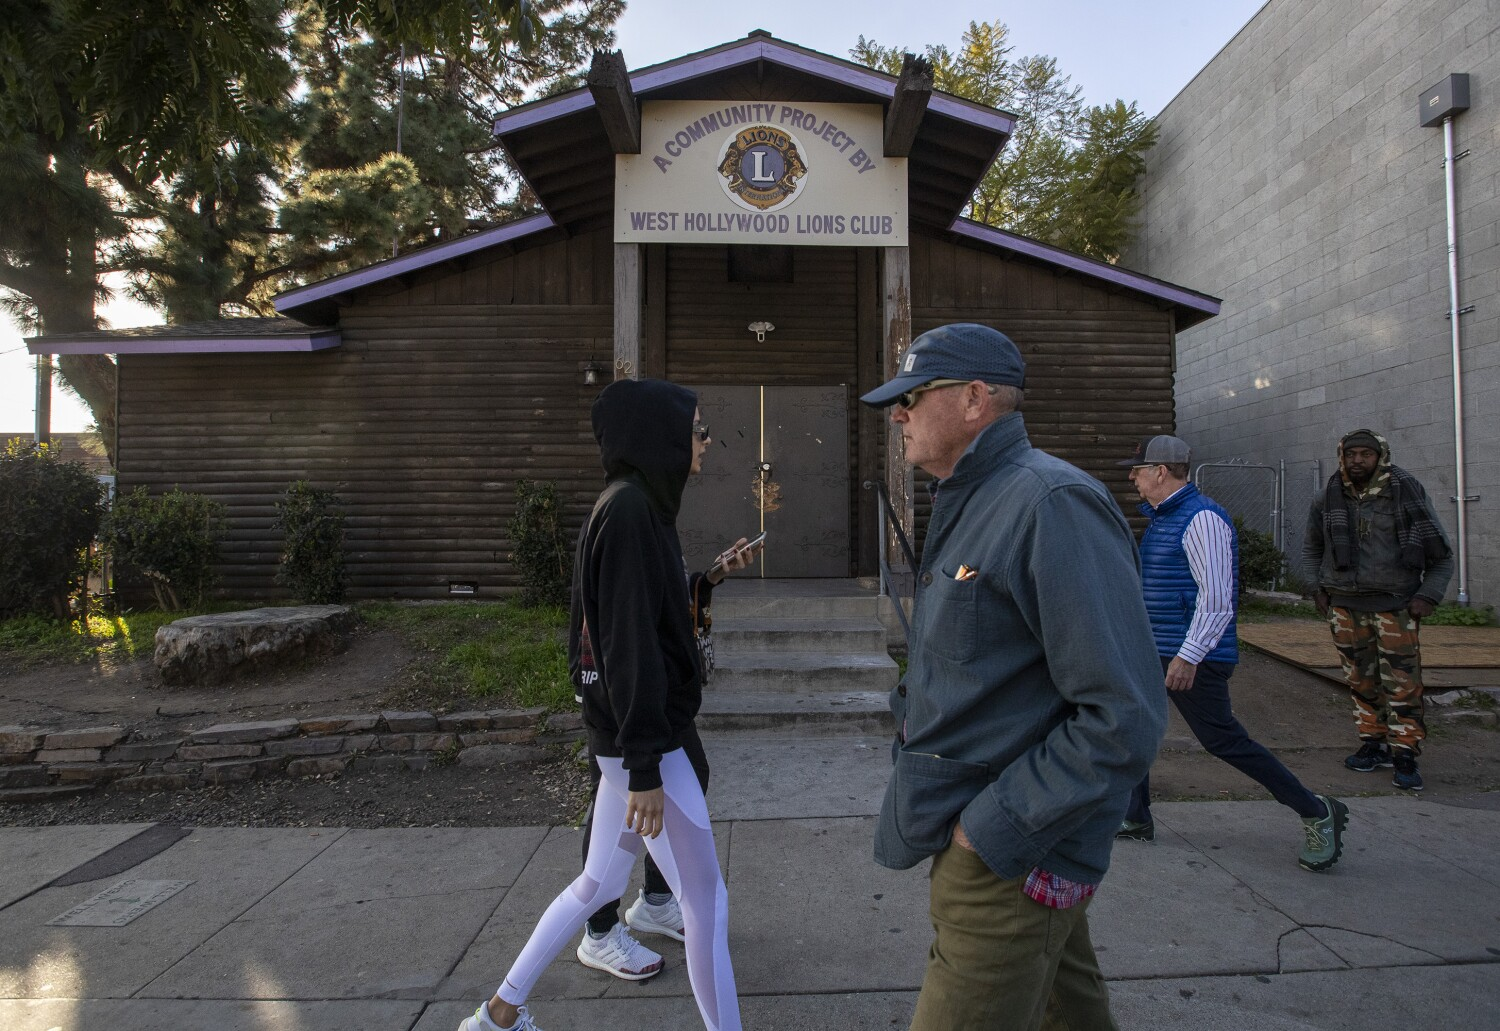 This log cabin is a haven for sobriety groups. Beverly Hills wants it removed